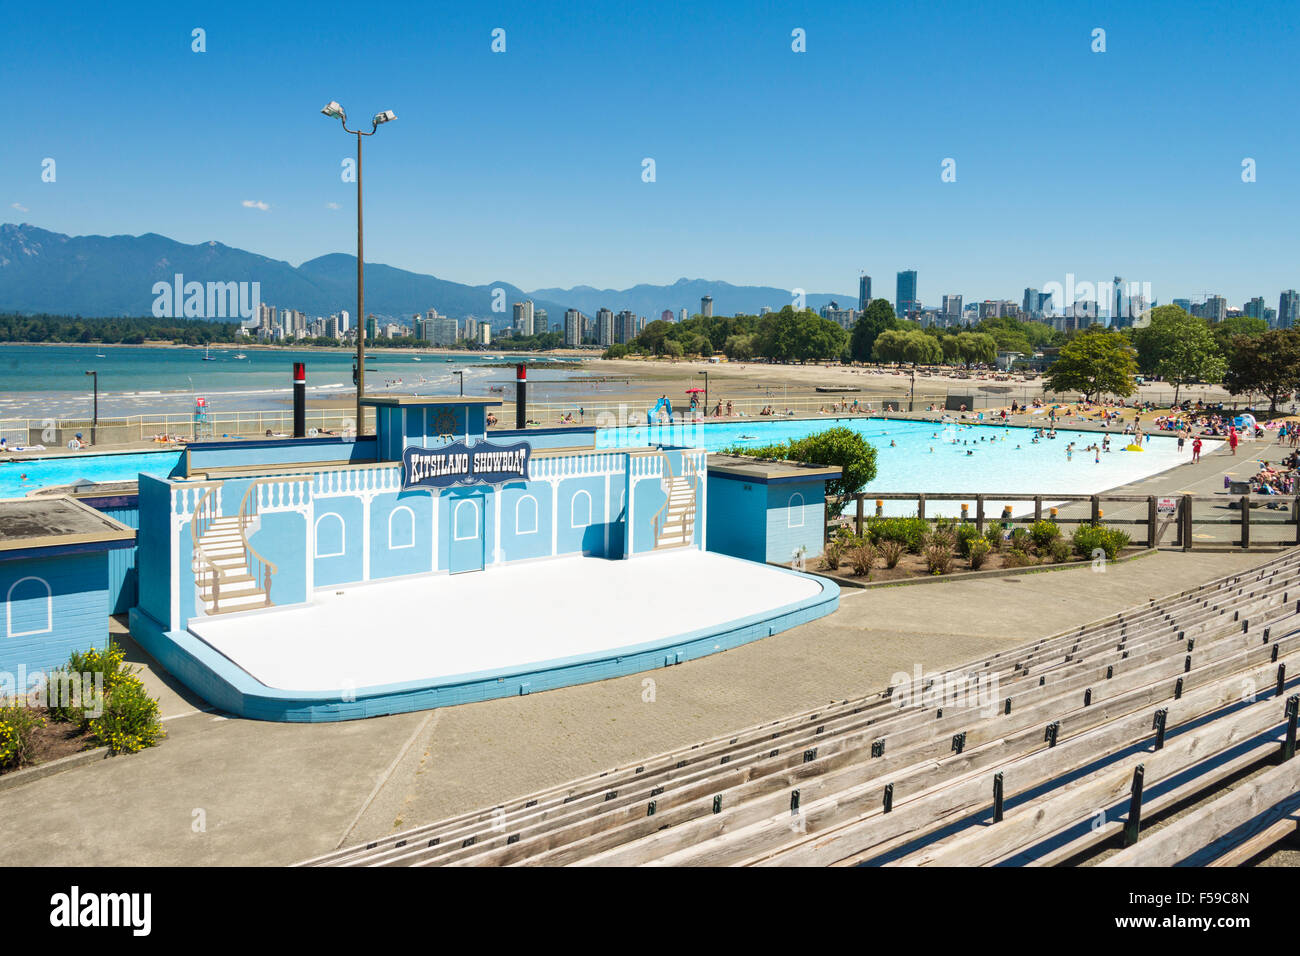 Kitsilano Showboat, at Kitsilano Beach, Vancouver, is an open air amphitheatre. It hosts free performances in summer - Stock Image